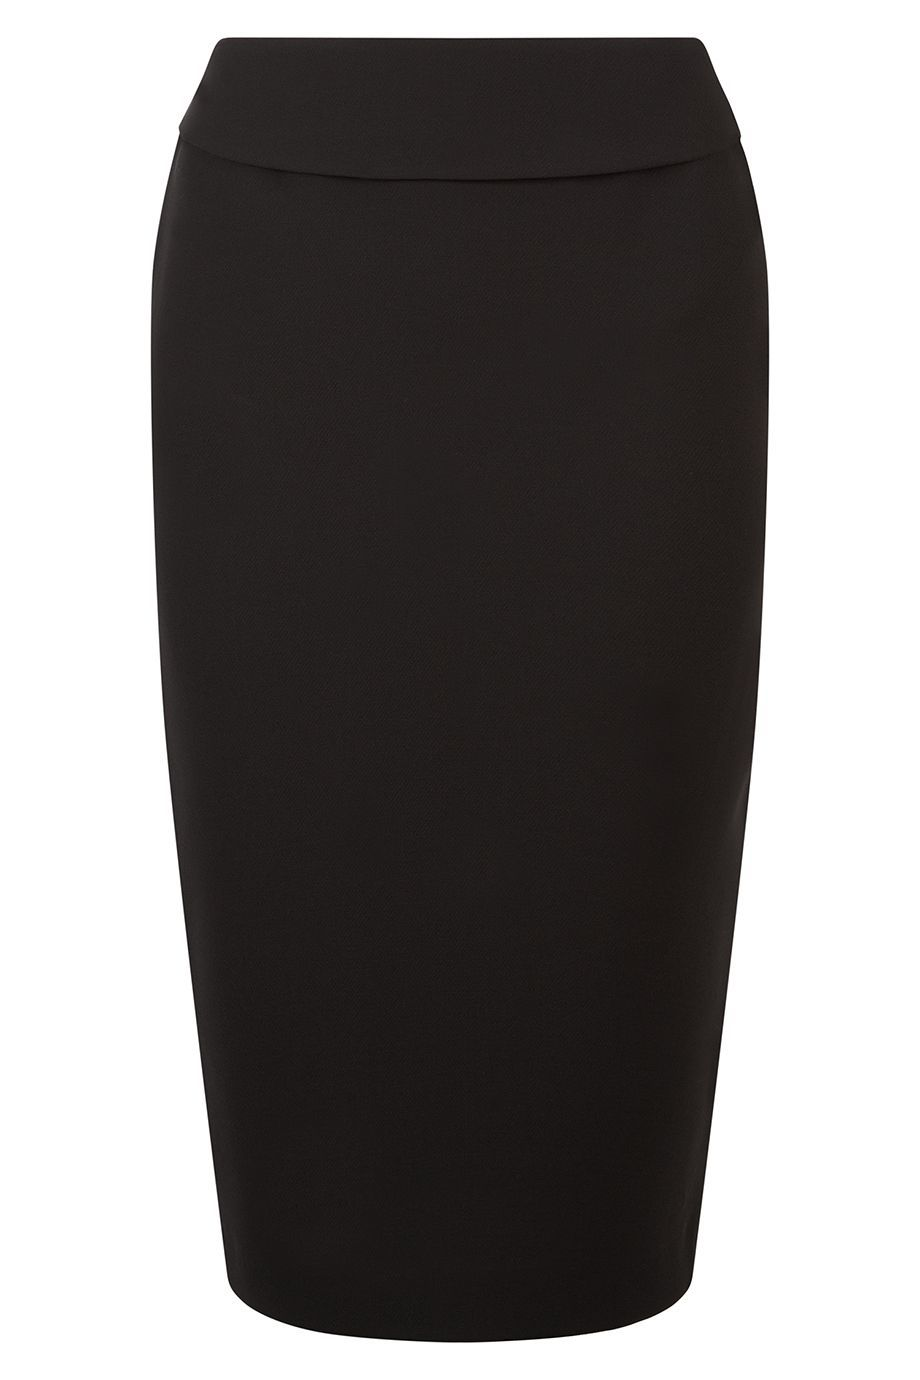 Spotlight Skirt, Black - pattern: plain; style: pencil; fit: tailored/fitted; waist: high rise; predominant colour: black; occasions: evening, work, creative work; length: on the knee; fibres: polyester/polyamide - 100%; waist detail: narrow waistband; pattern type: fabric; texture group: other - light to midweight; season: a/w 2015